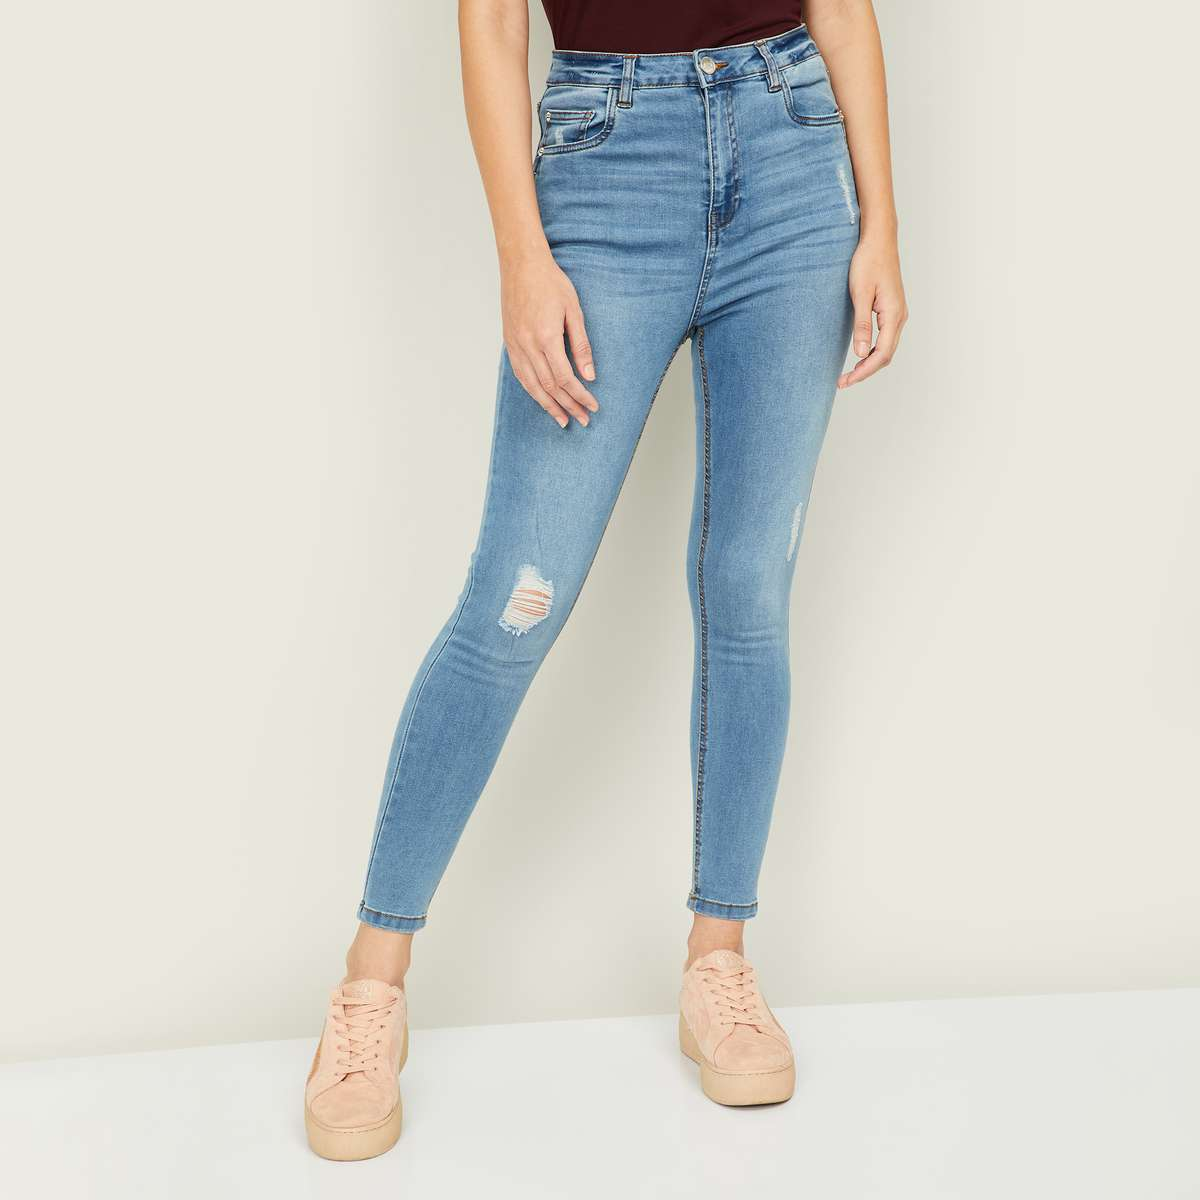 2.GINGER Women Stonewashed Skinny Fit Jeans